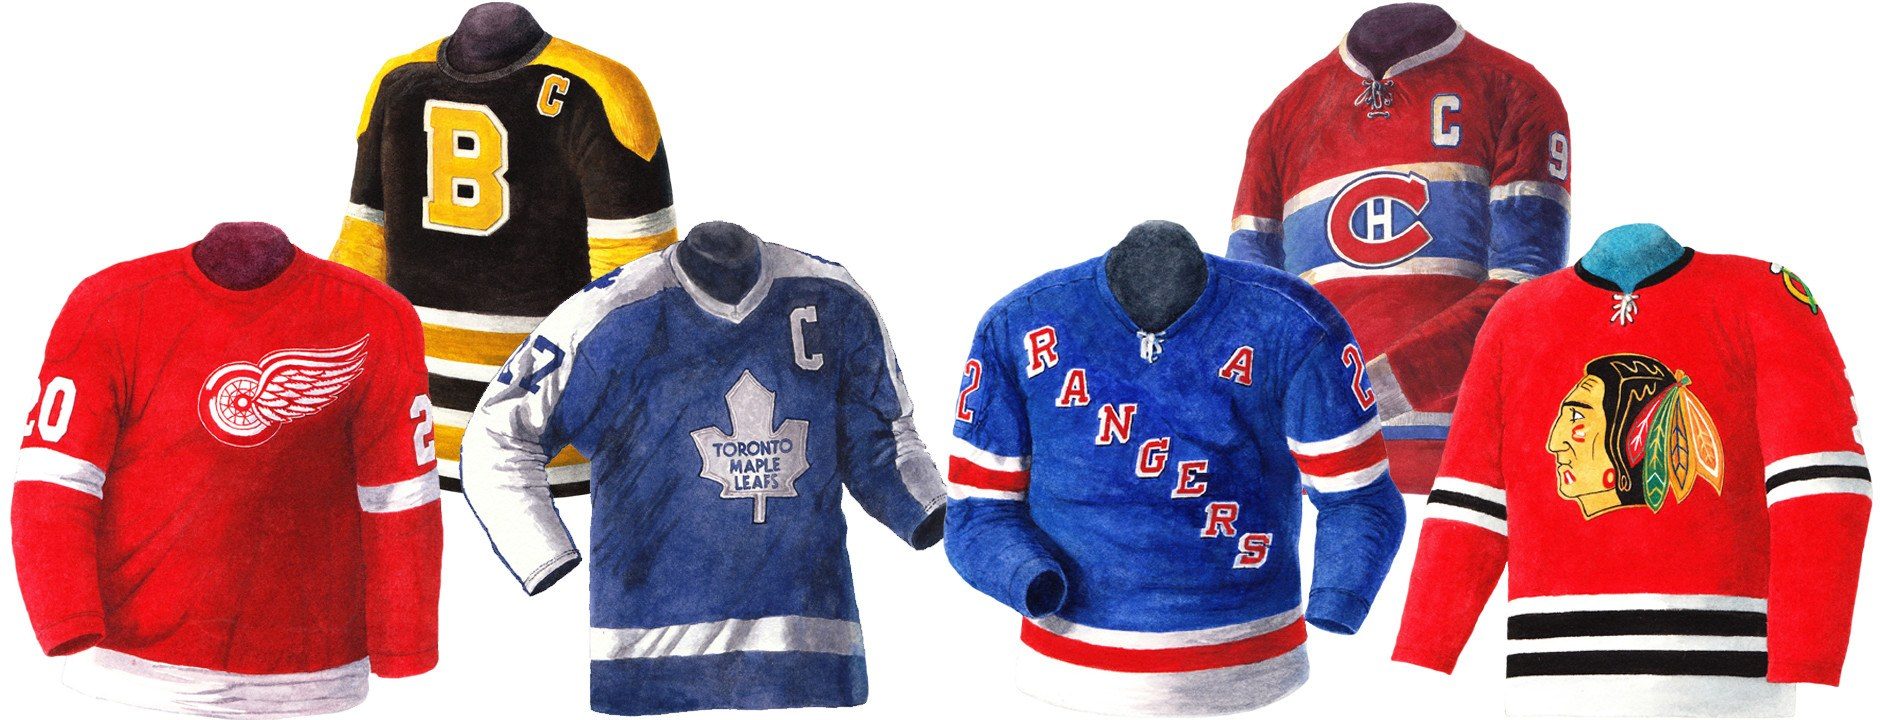 NHL vintage uniform images